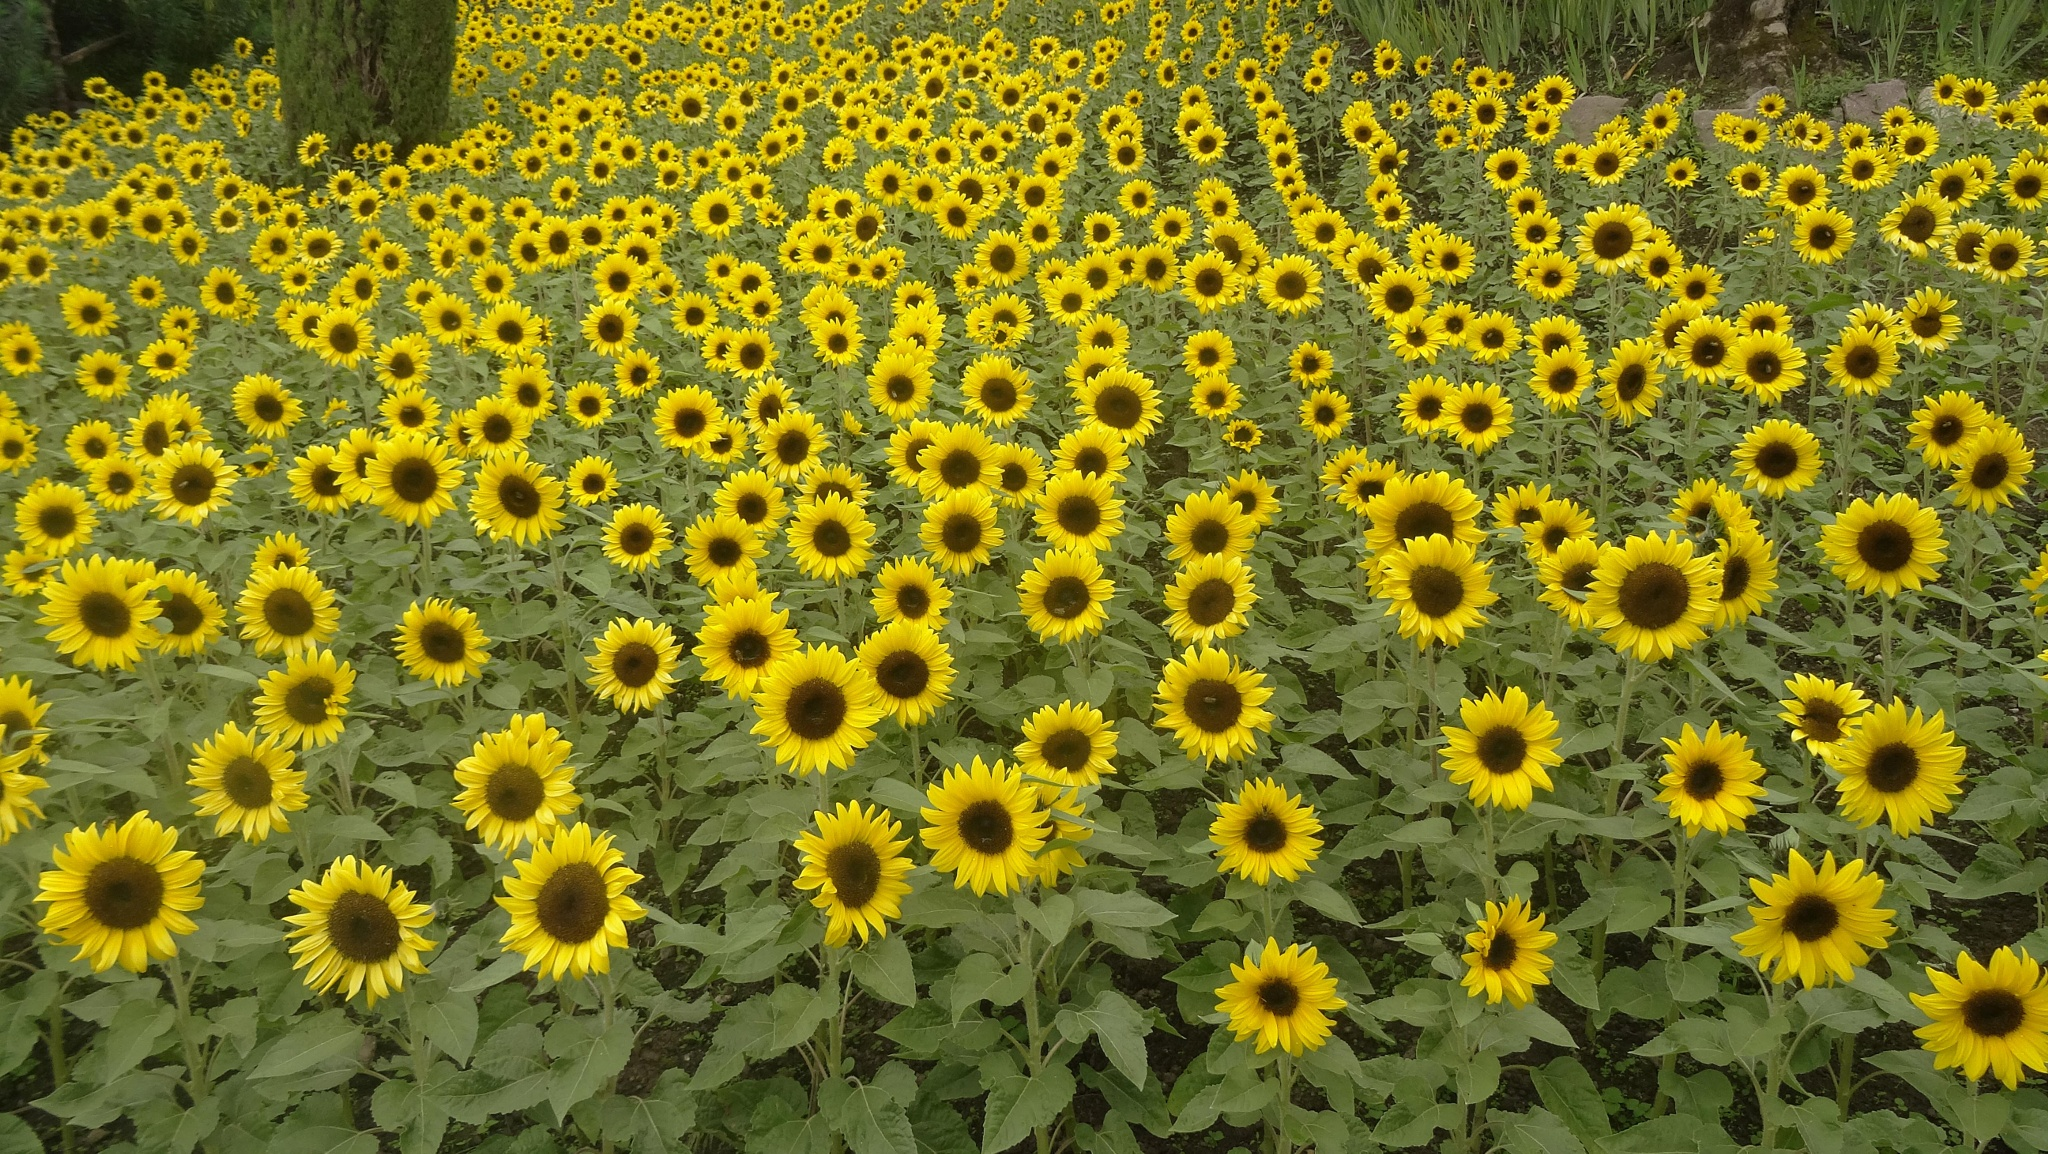 Sunflowers, Gardens of Trauttmansdorff Castle by Carolyn Chase